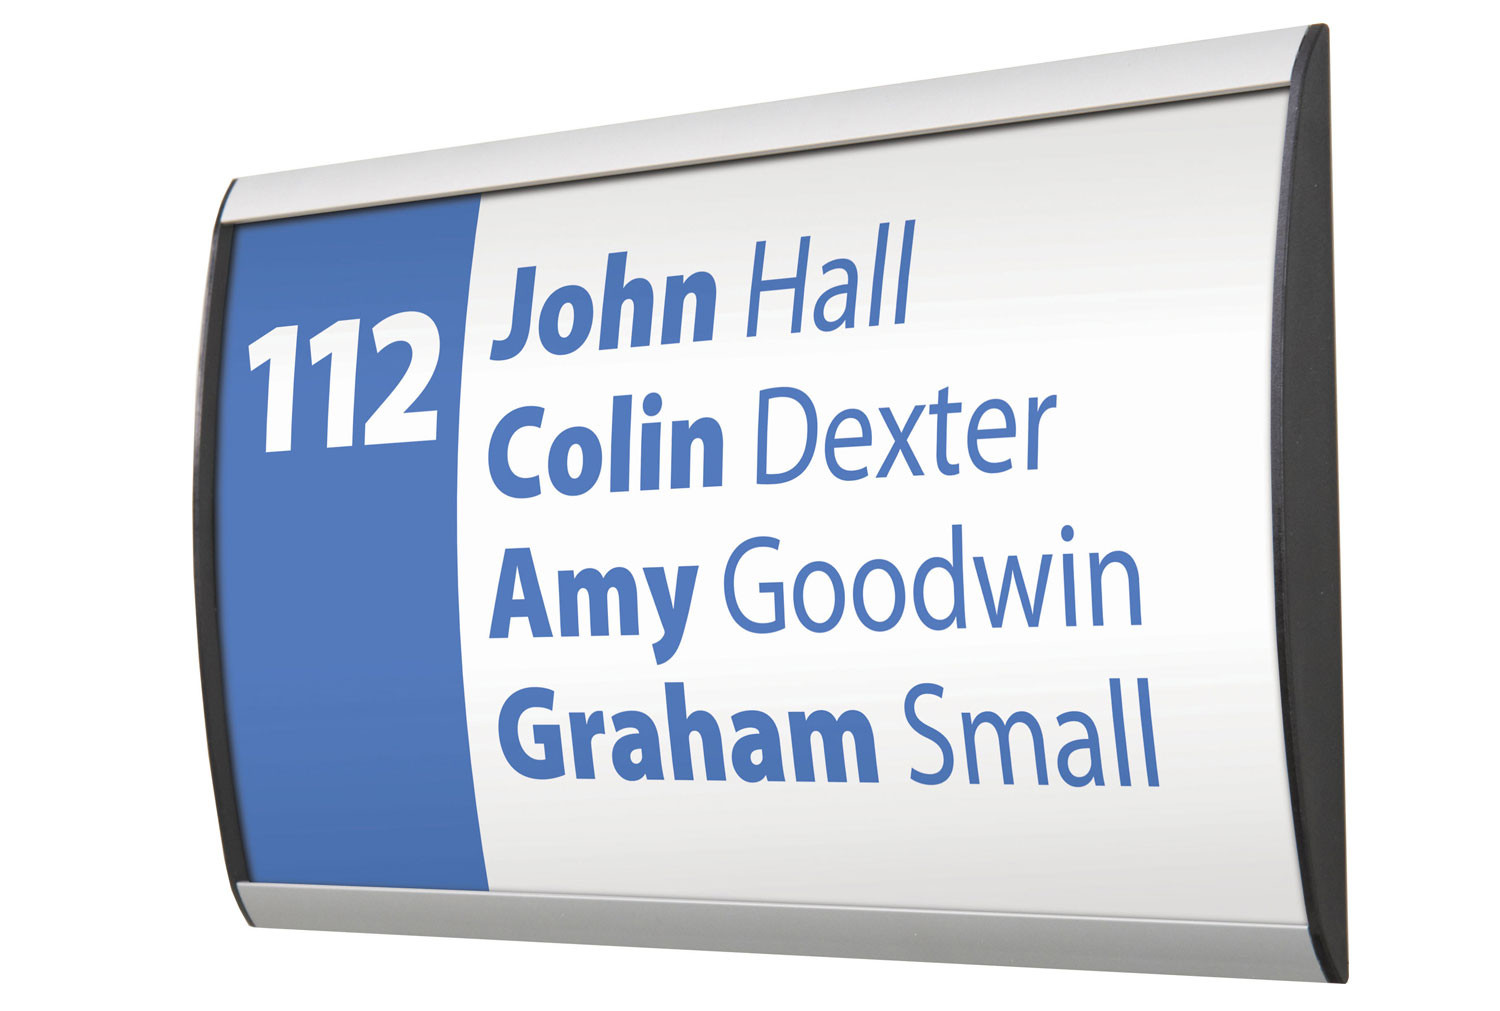 Showpoint Wall Sign System 162mm High